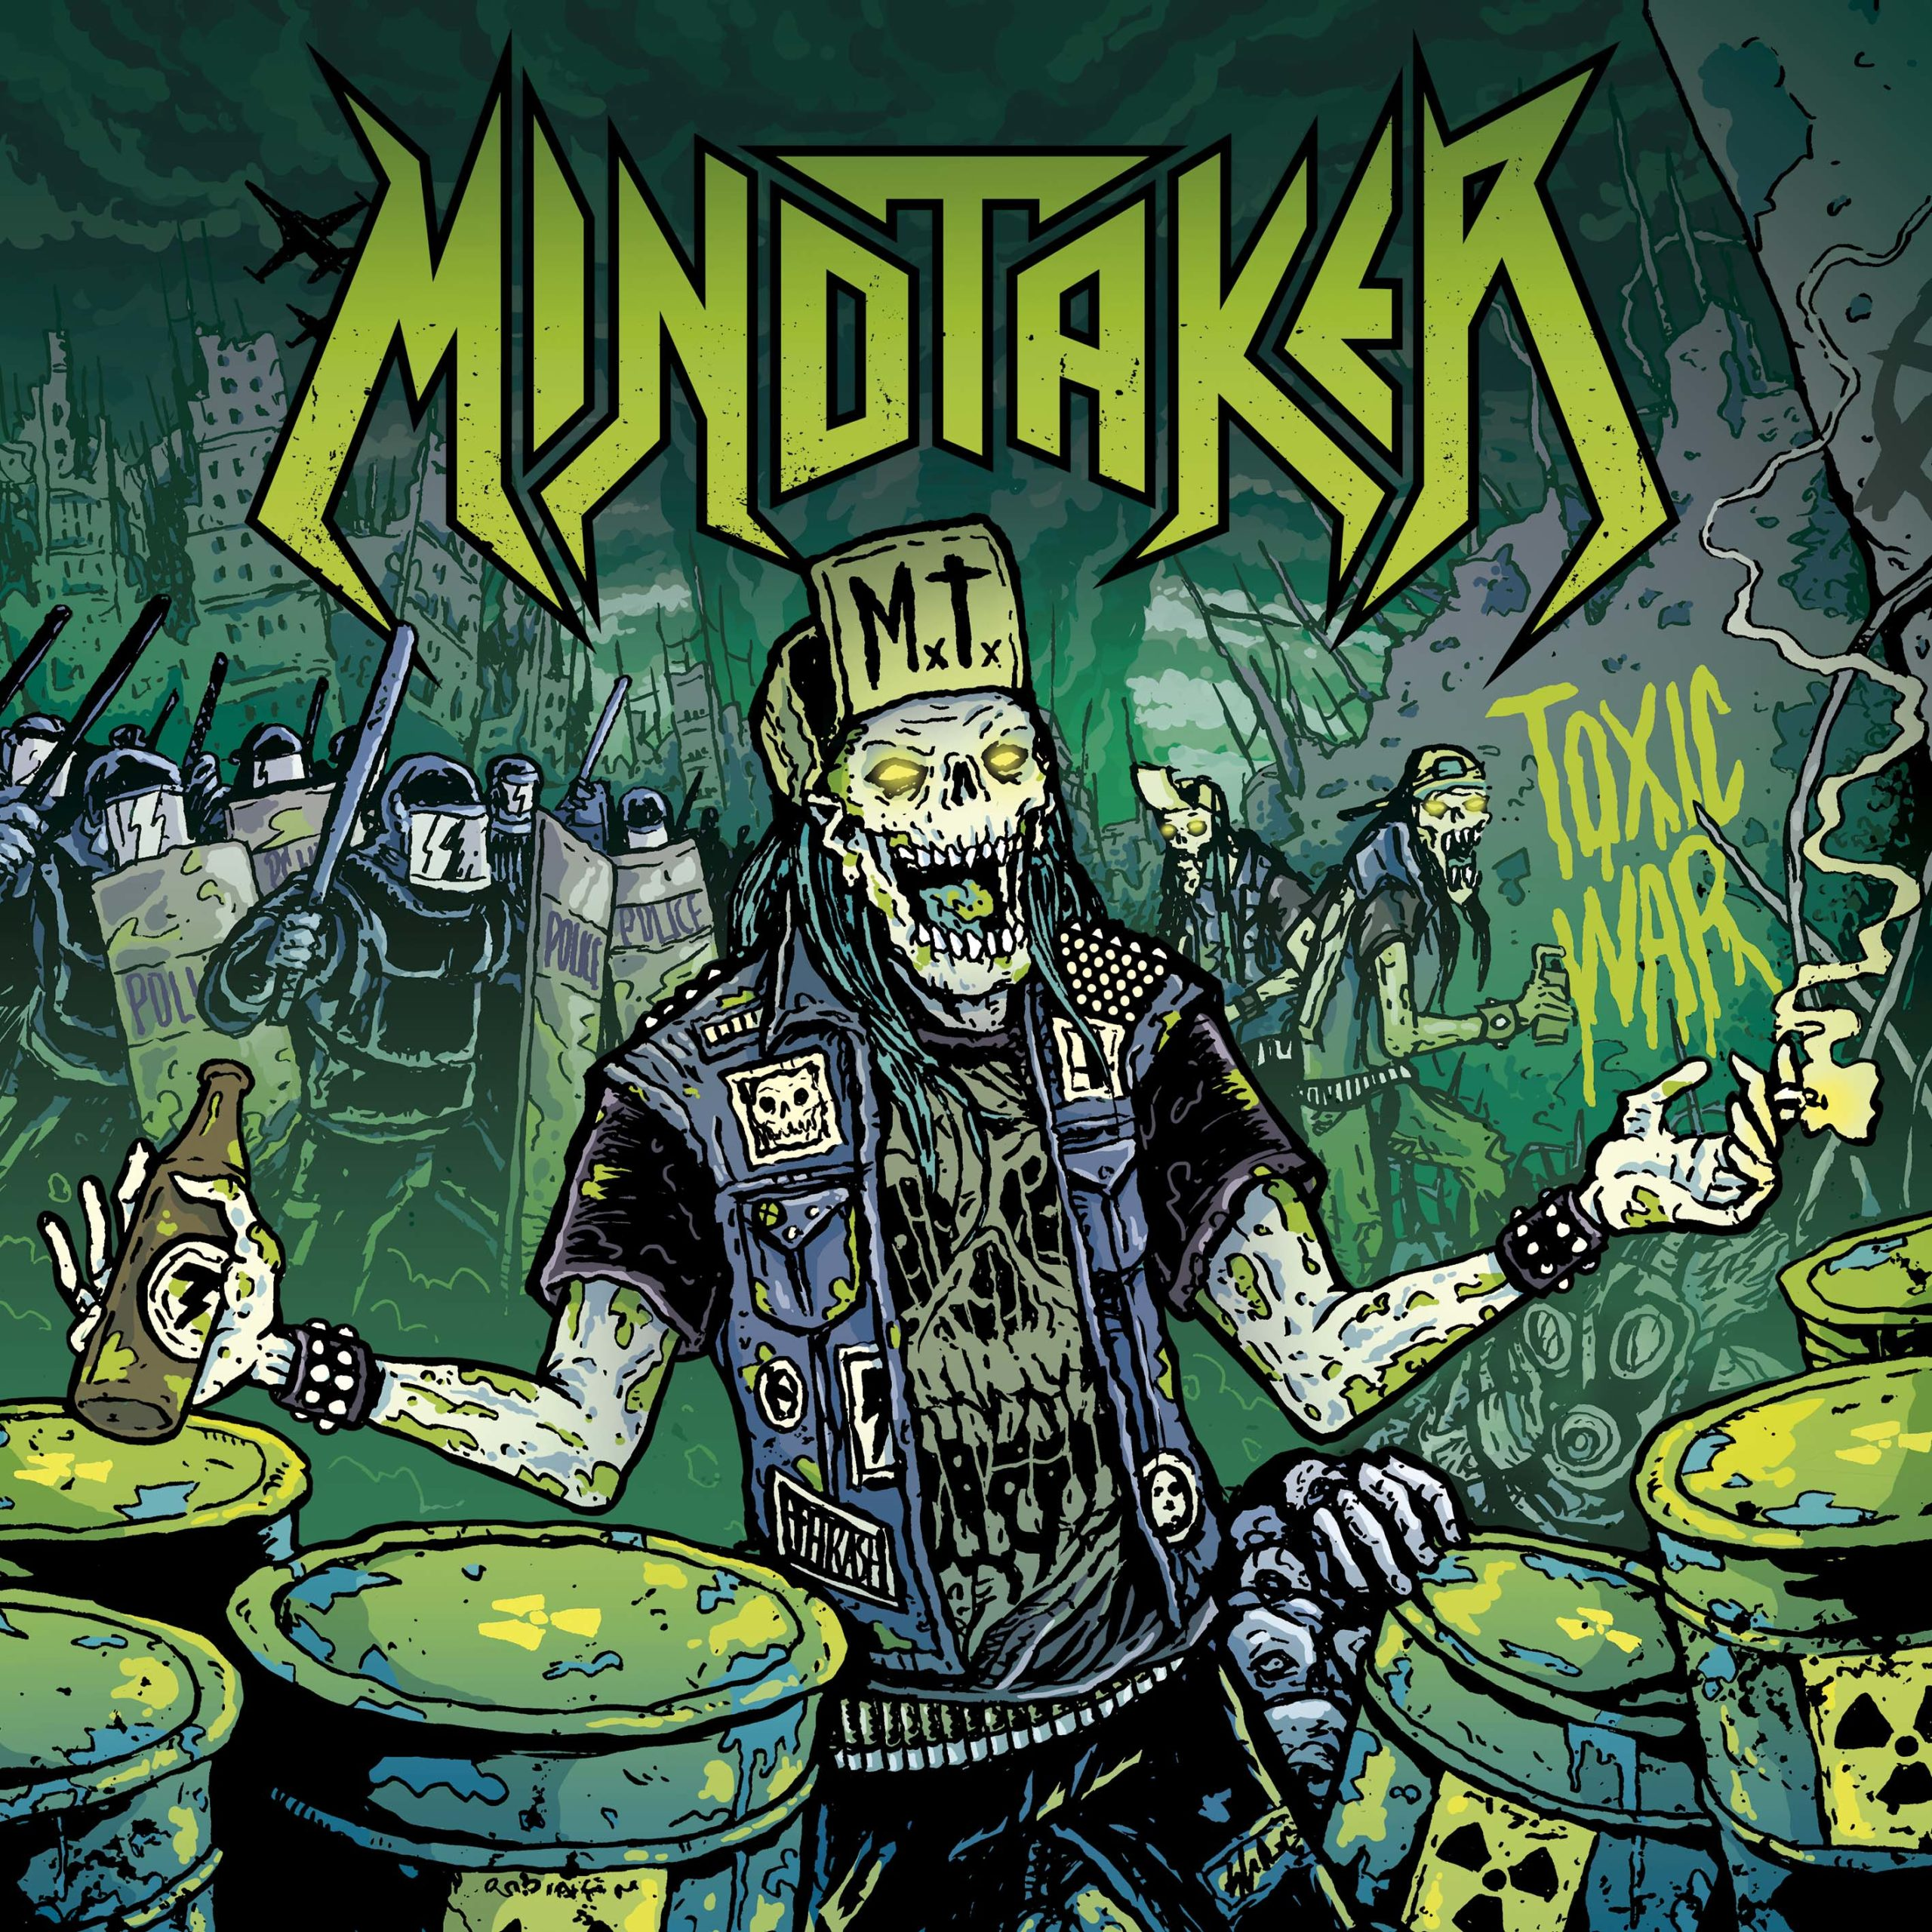 Mindtaker - Toxic War (Mosher Records, Firecum Records, Artwork by Luis Sendon)